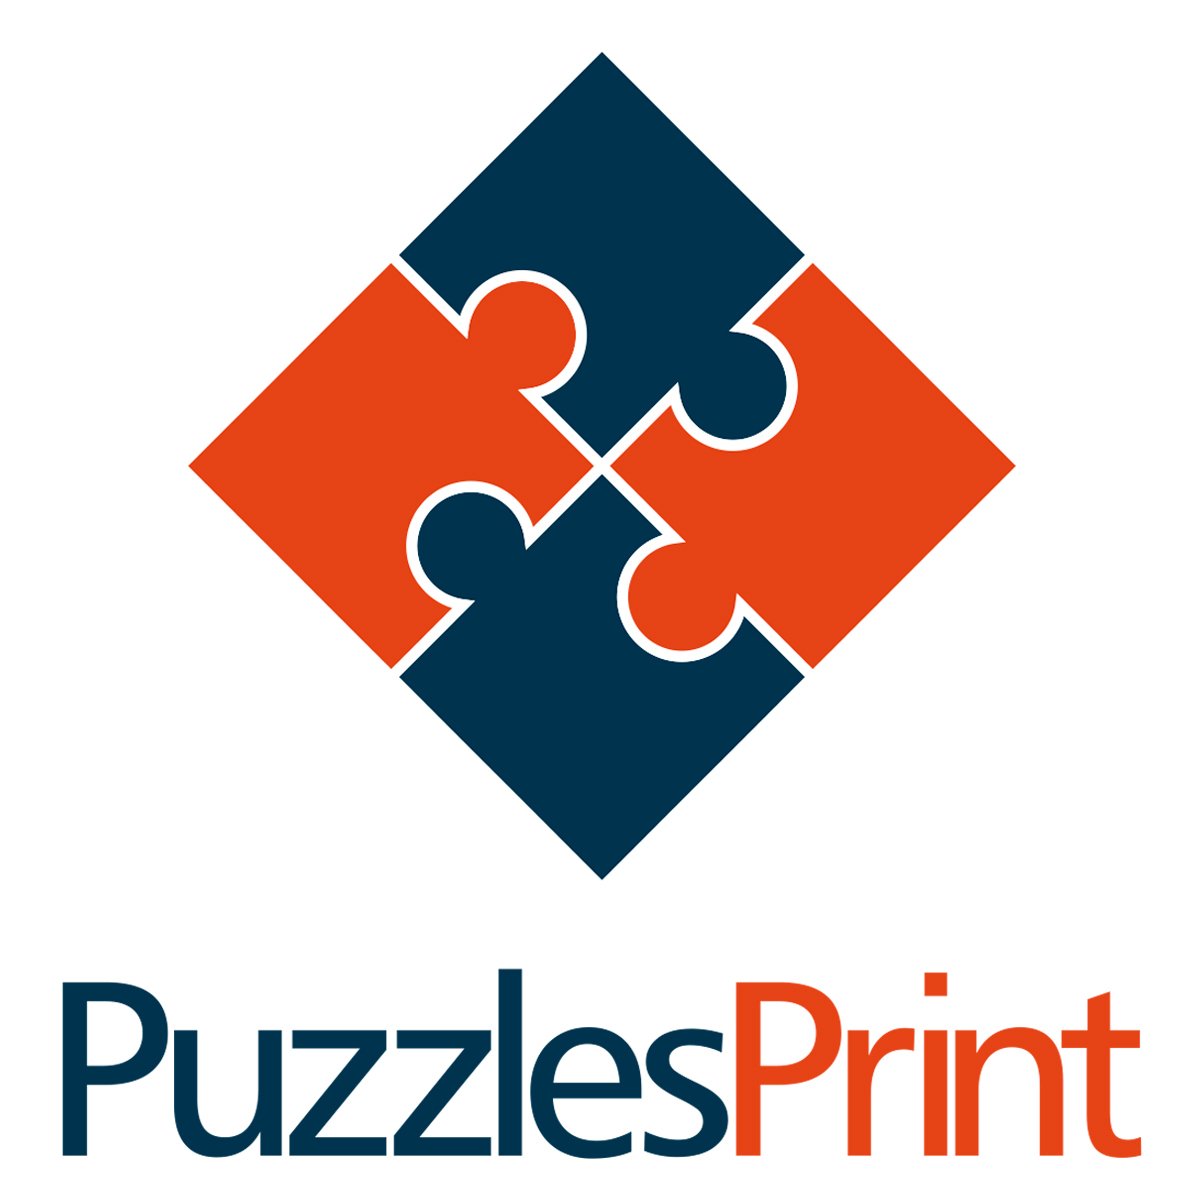 Make Picture Puzzle With 1000 Pieces - Print Puzzle Nz